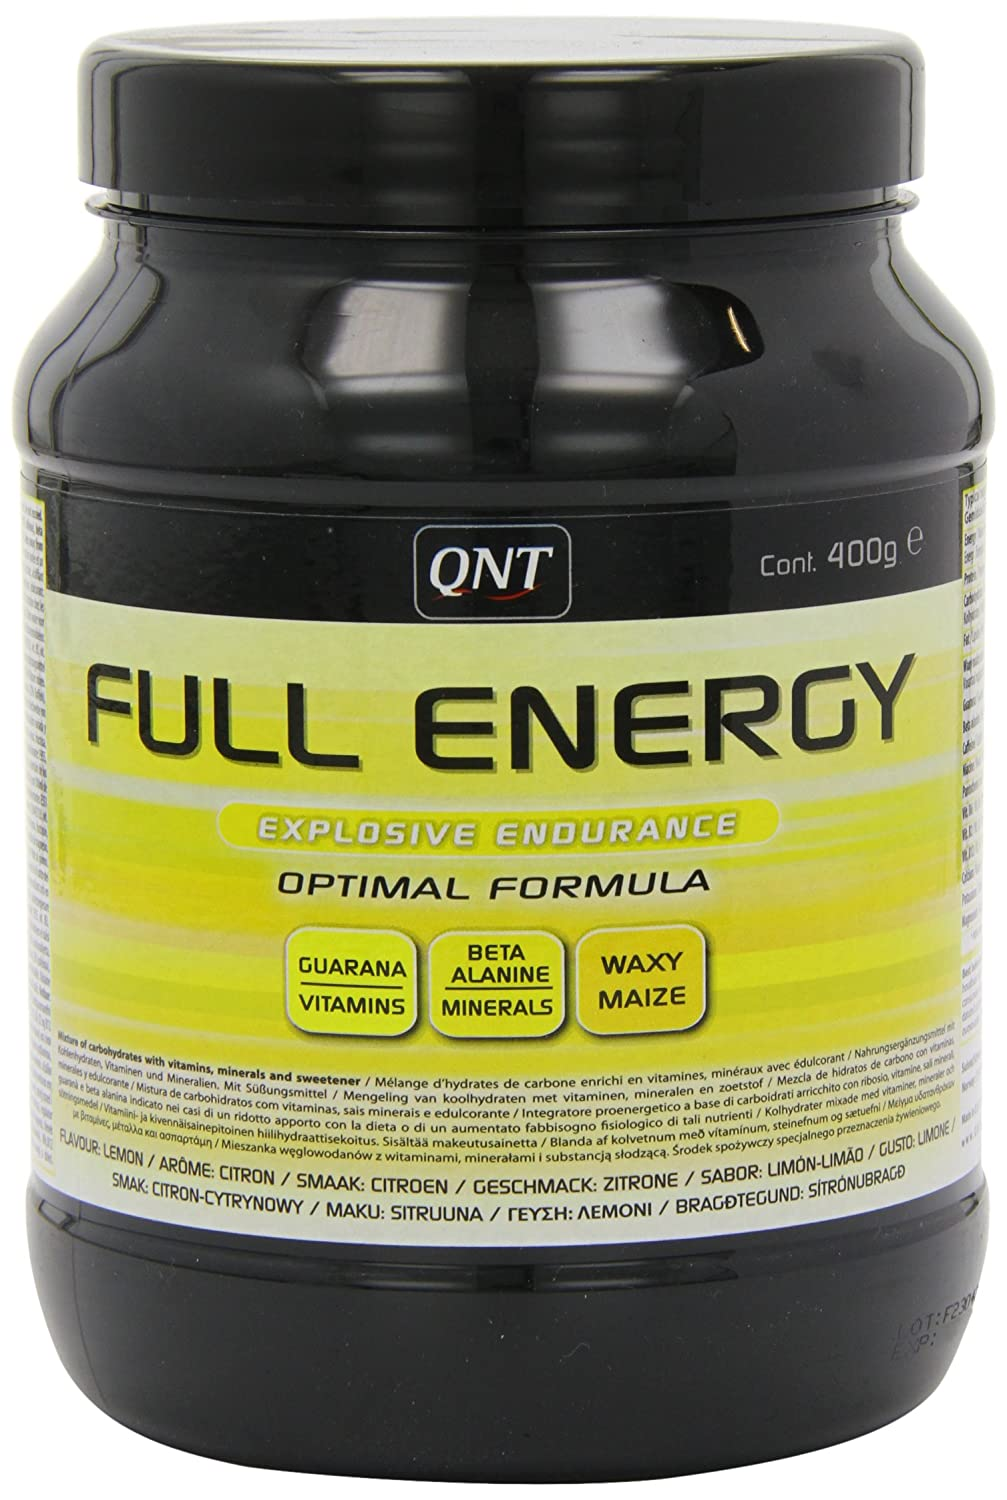 Amazon.com: QNT Full Energy 400 g Lemon Energy, Performance and Endurance Drink Powder: Health & Personal Care